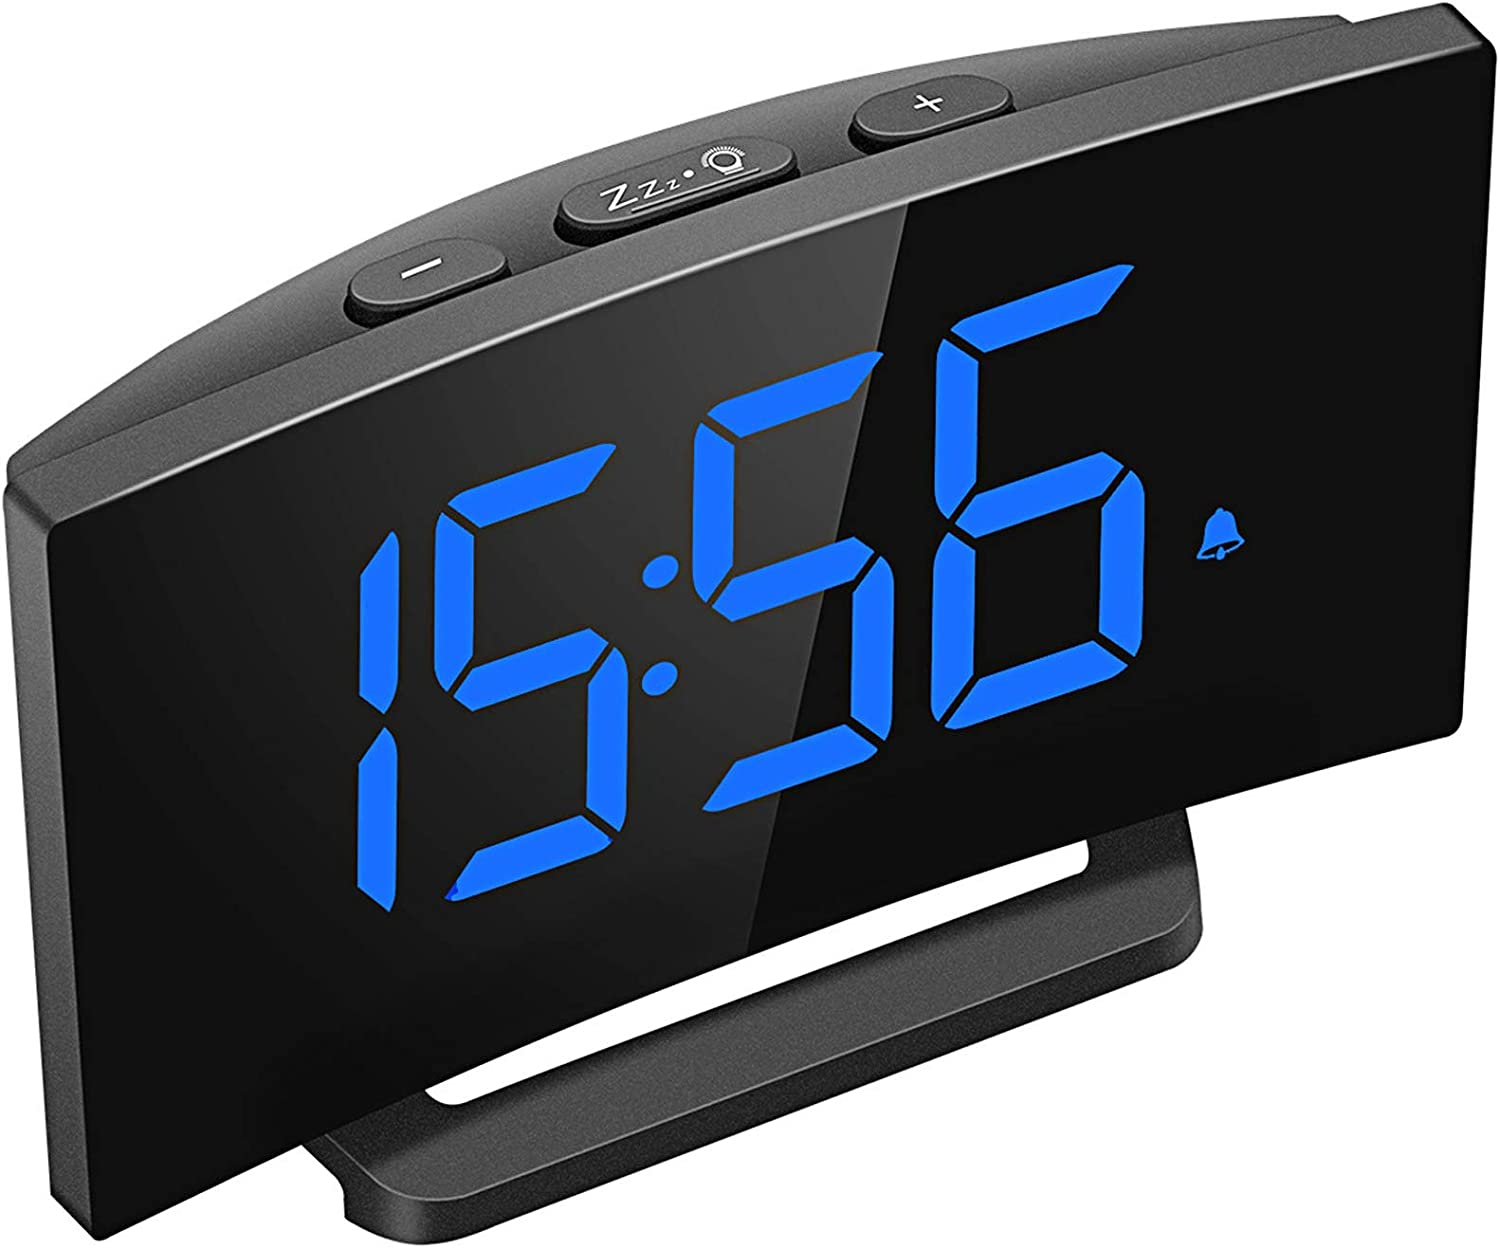 Amazon Com Mpow Digital Alarm Clock 5 Curved Led Screen 6 Brightness 3 Alarm Sounds Easy Digital Clock For Kids And Adults Alarm Clocks For Bedrooms Kitchen Office Adjustable Volume Snooze 12 24h Home